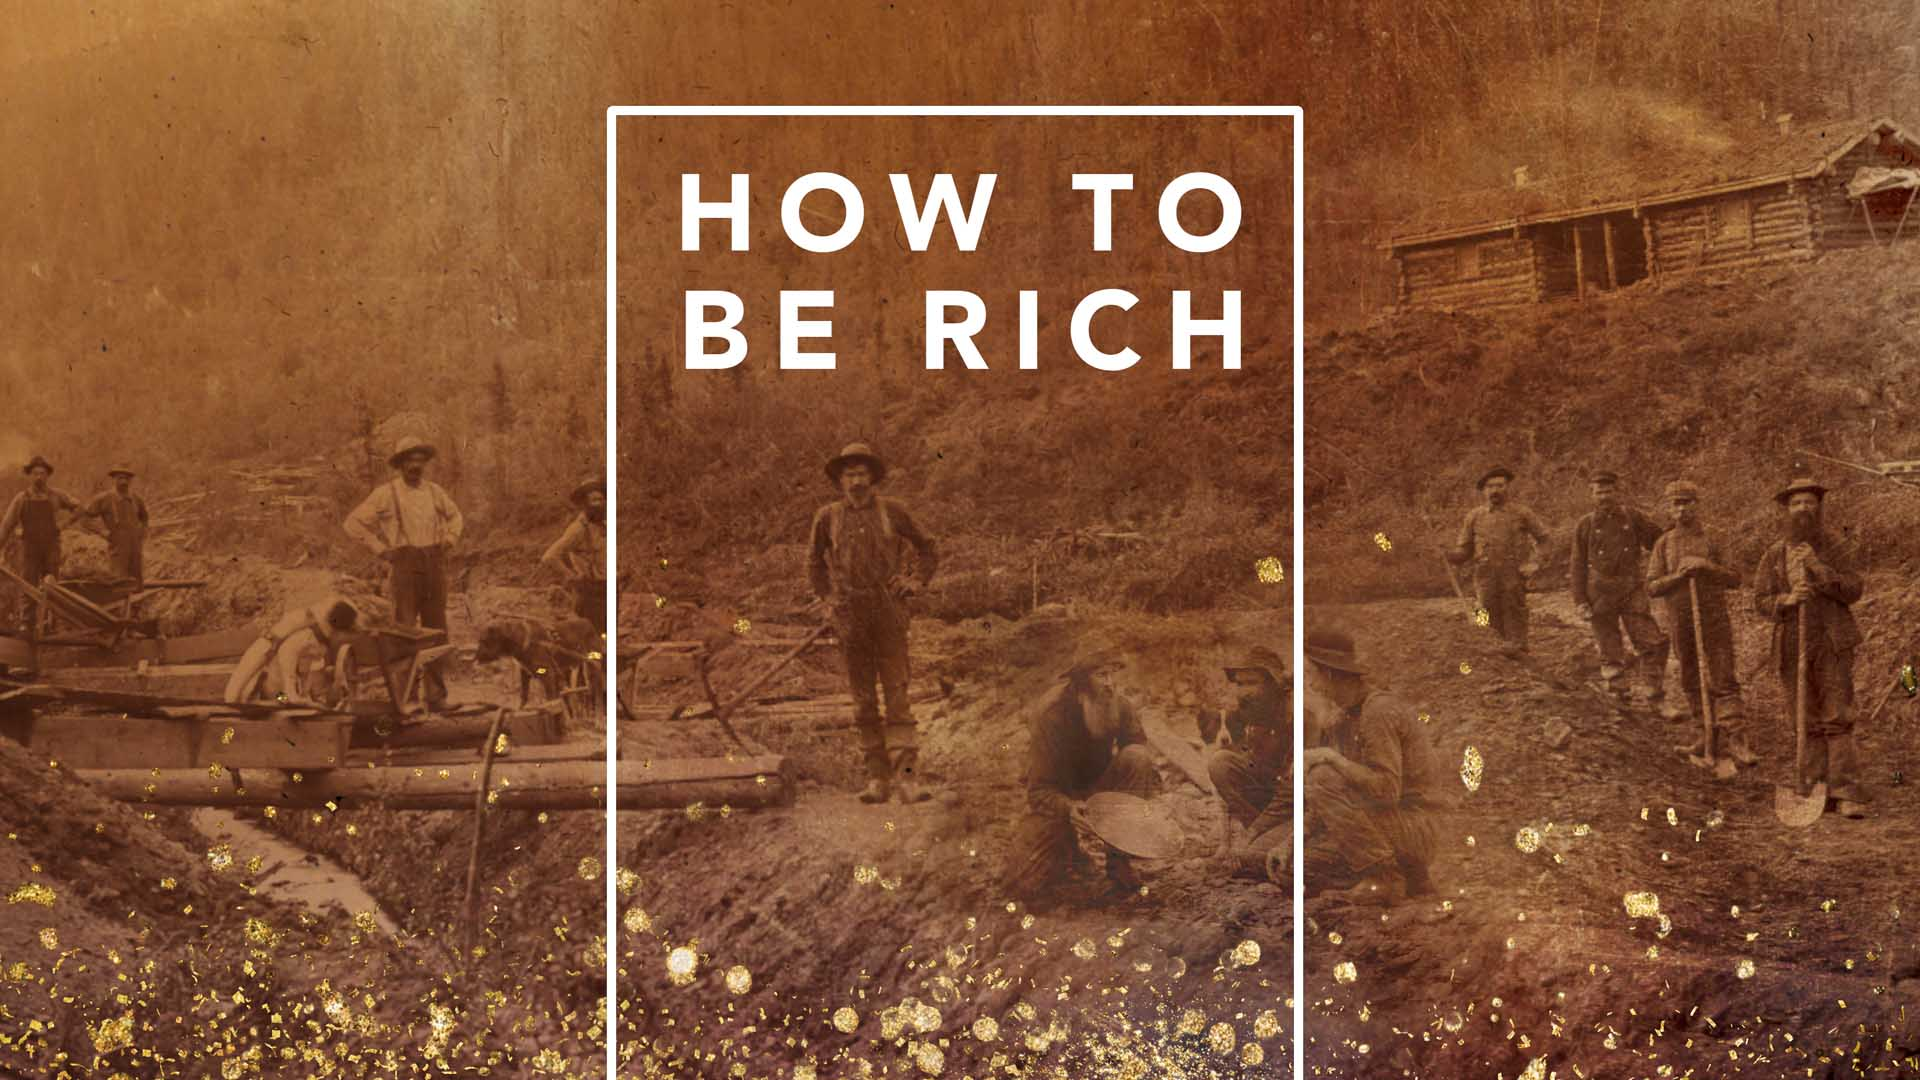 Rich in Relationships: Avoiding the Poverty of Isolation